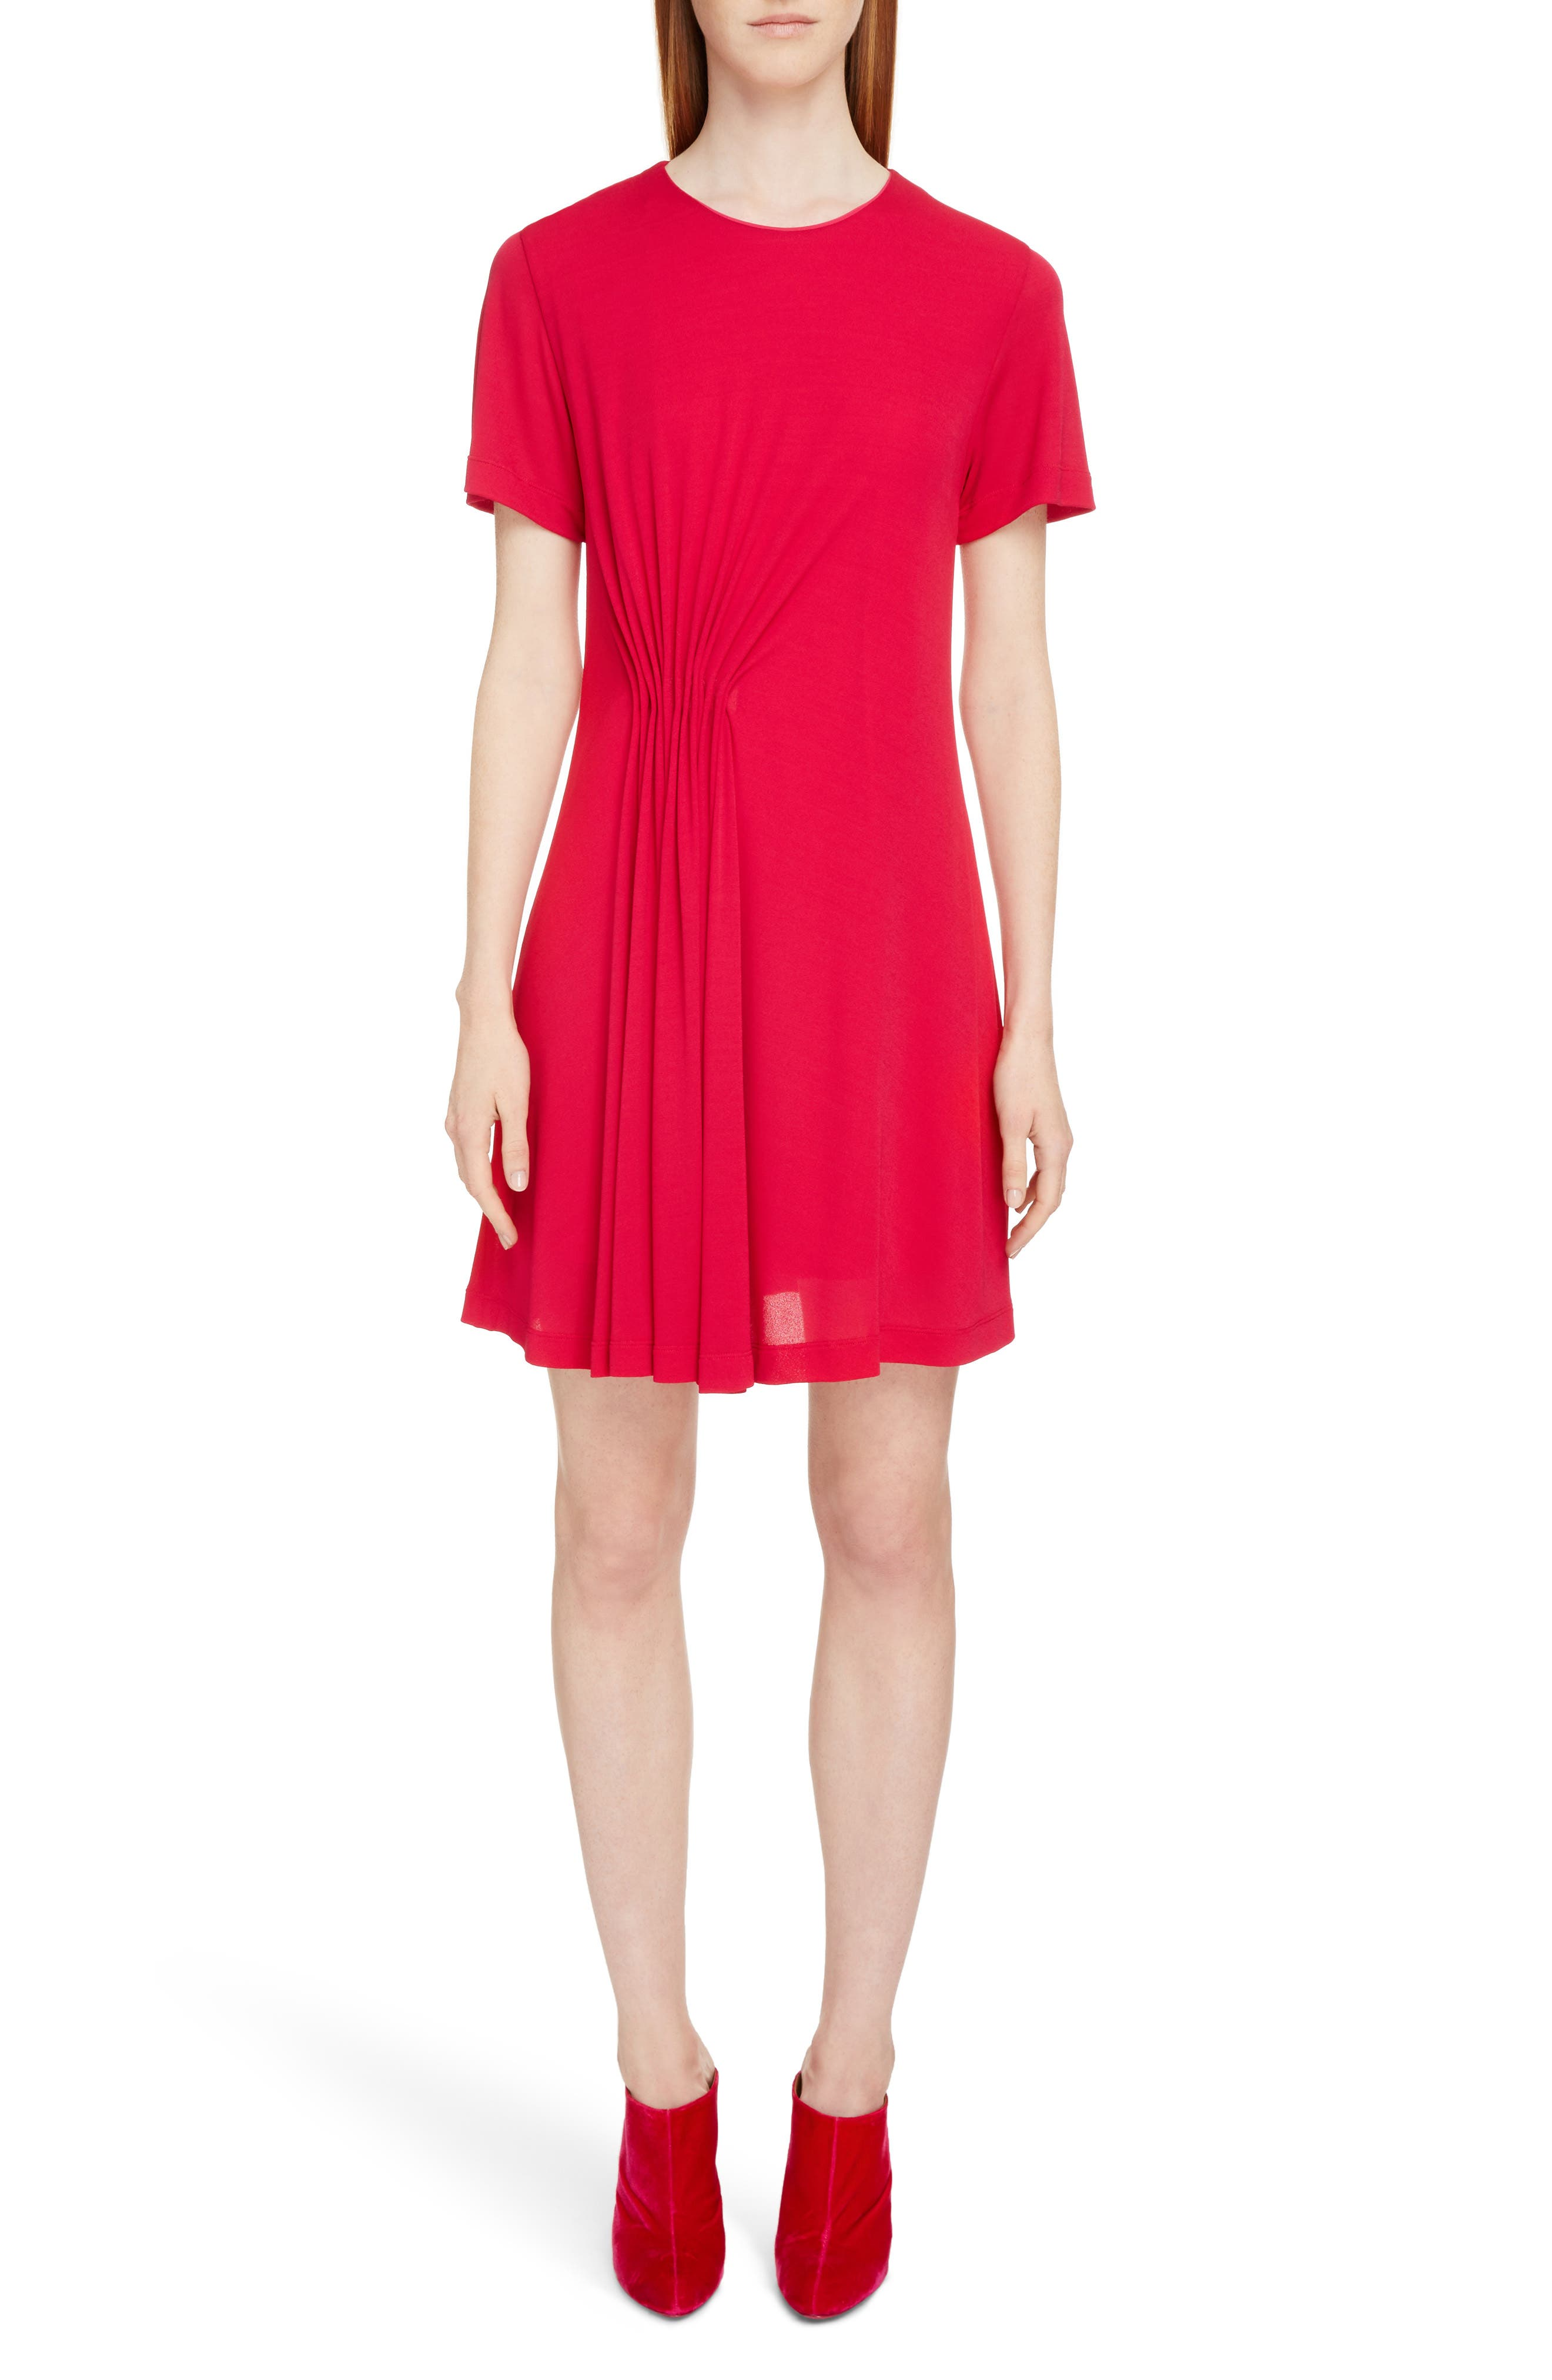 Givenchy Gathered Jersey Dress